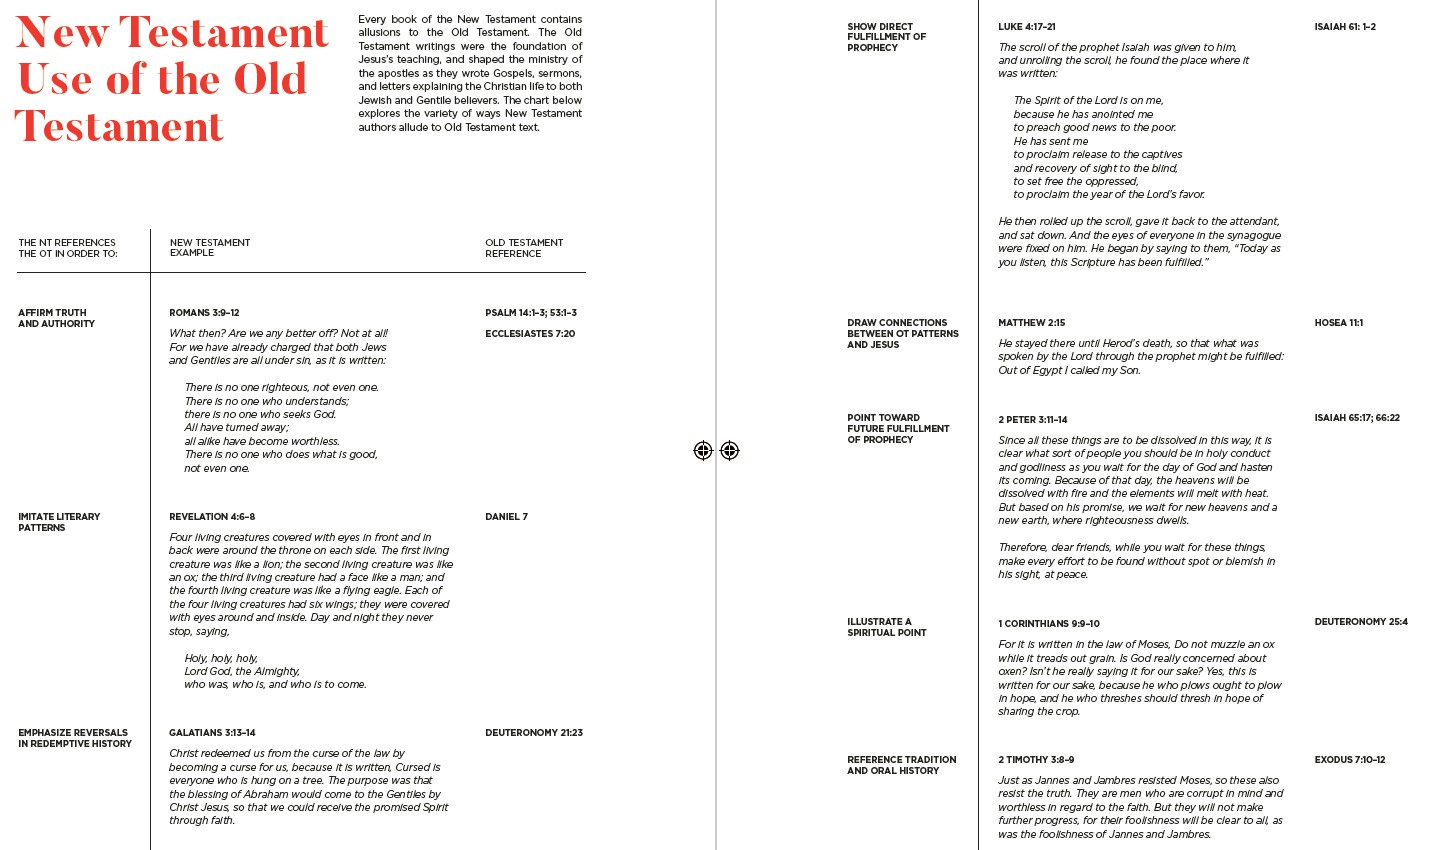 Click to enlarge the New Testament Use of the Old Testament infographic